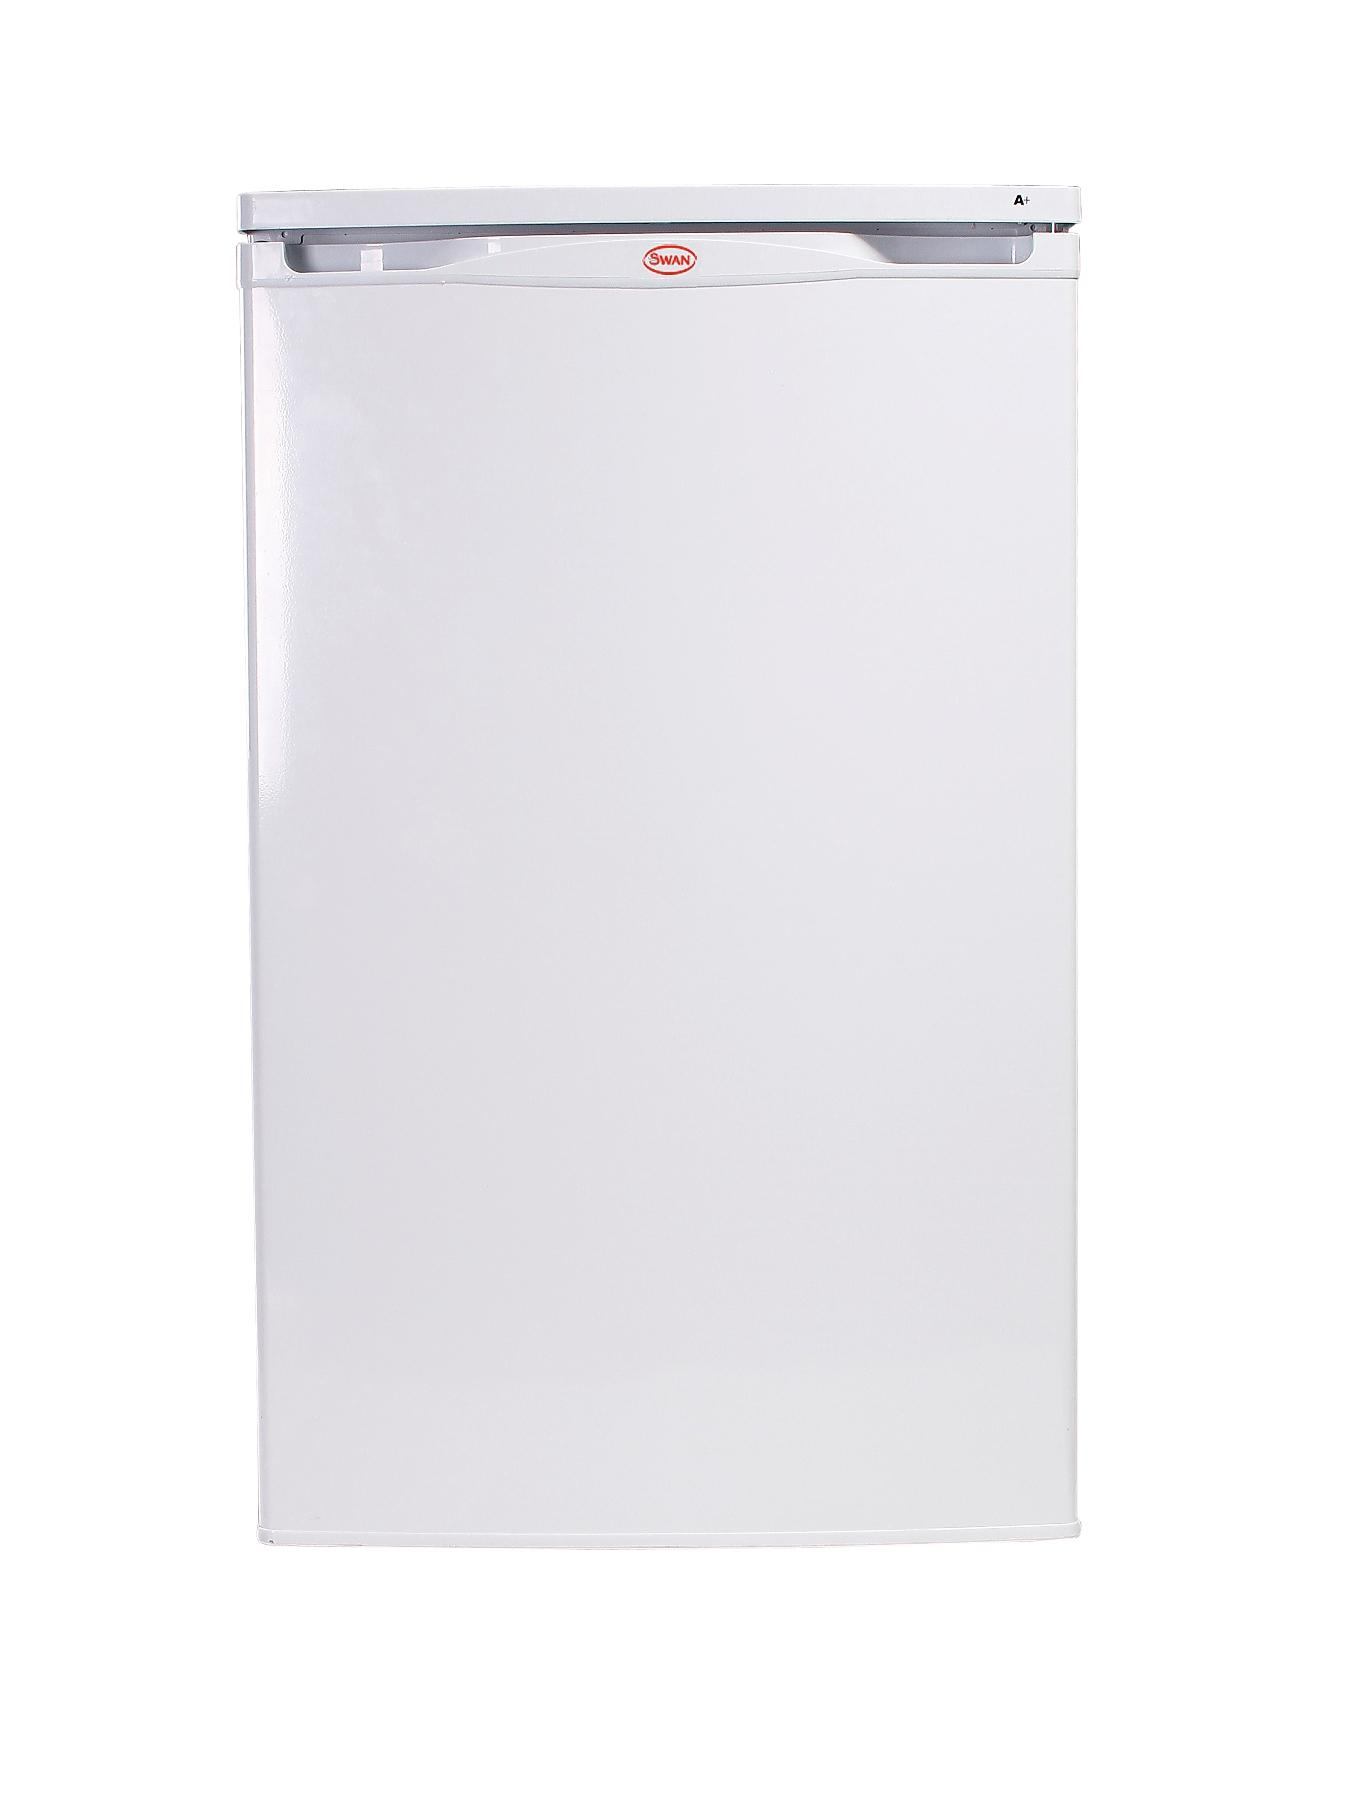 50cm Under Counter Fridge - White at Littlewoods